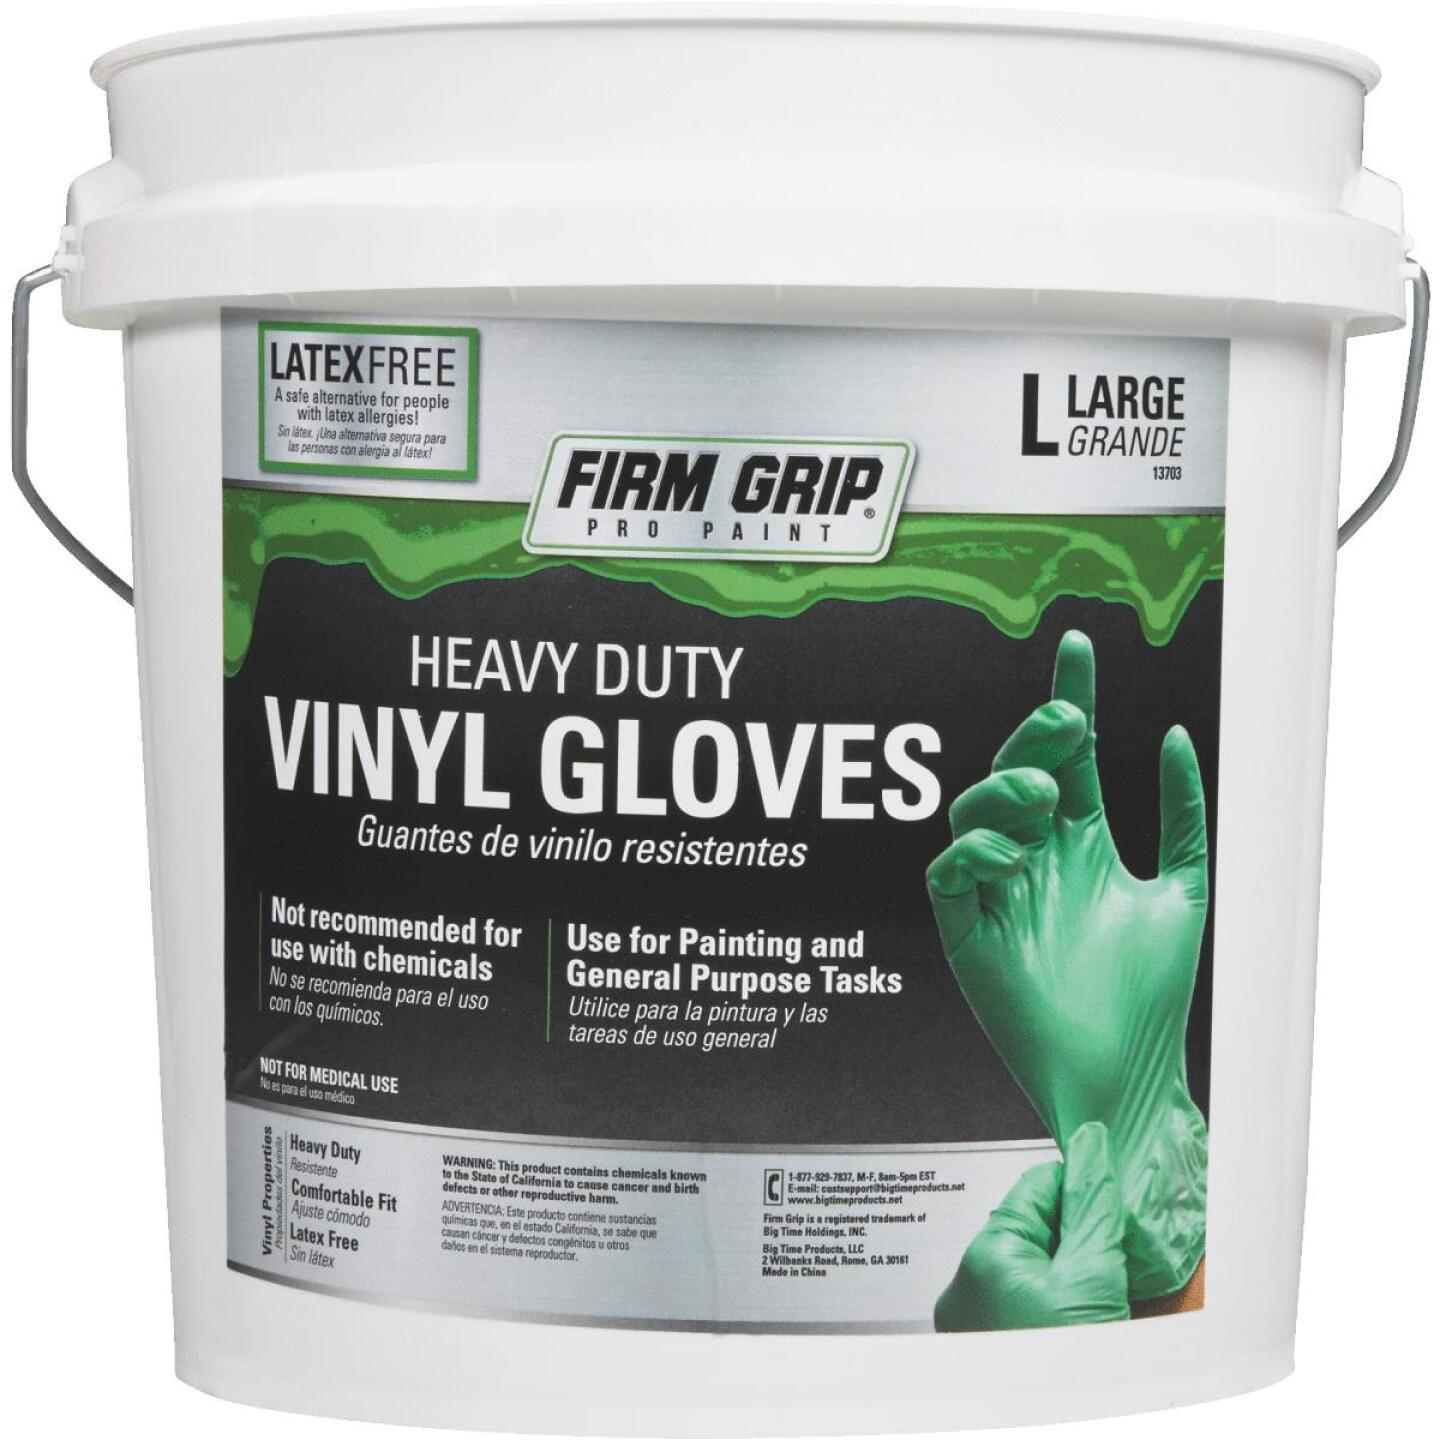 Firm Grip Large Heavy-Duty Vinyl Disposable Glove (300-Pack) Image 3